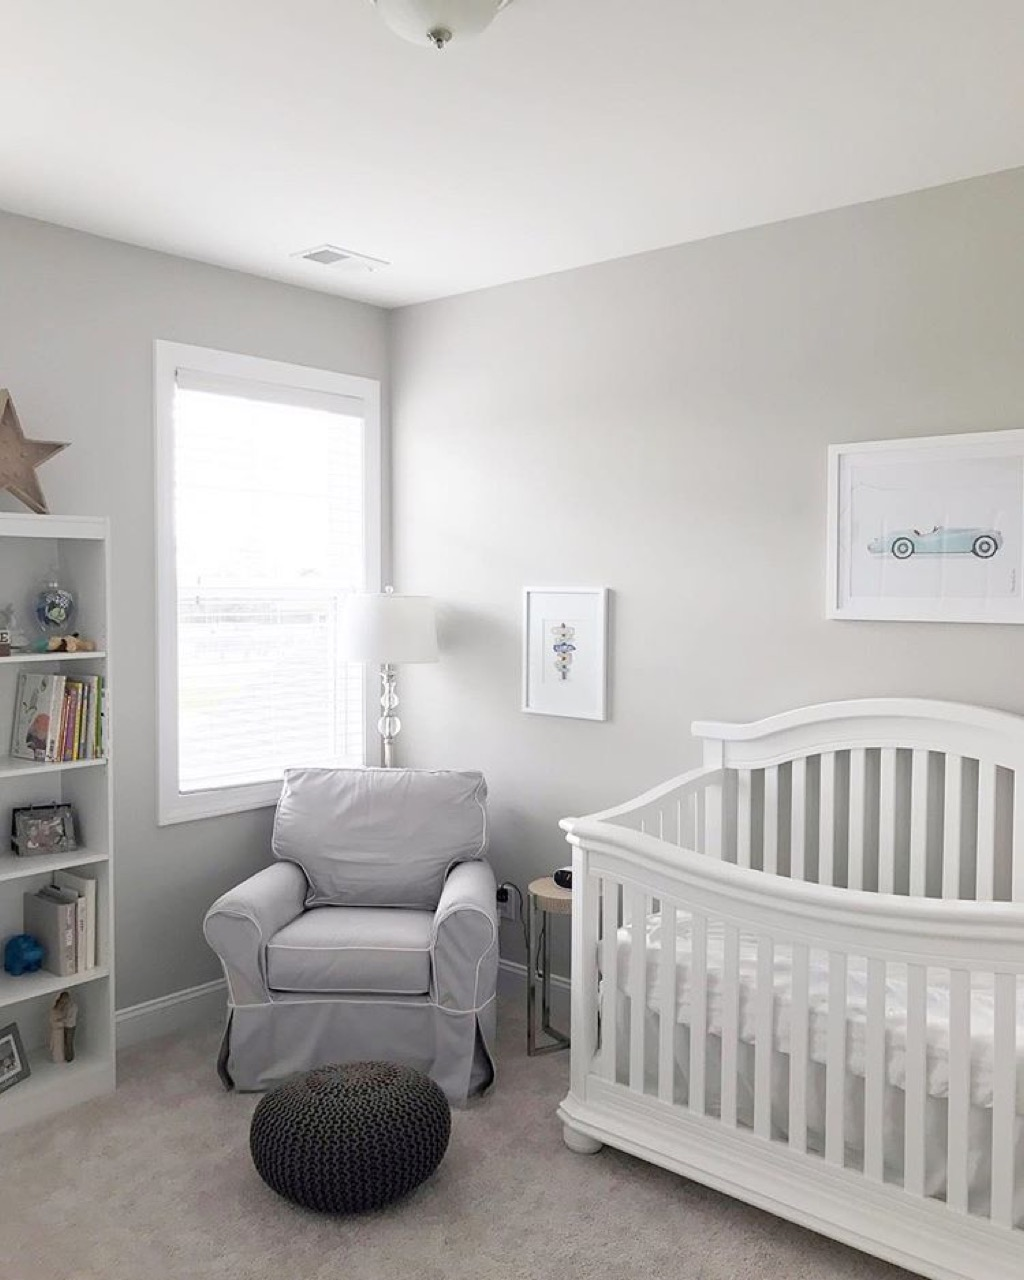 Lighting and seating in nursery